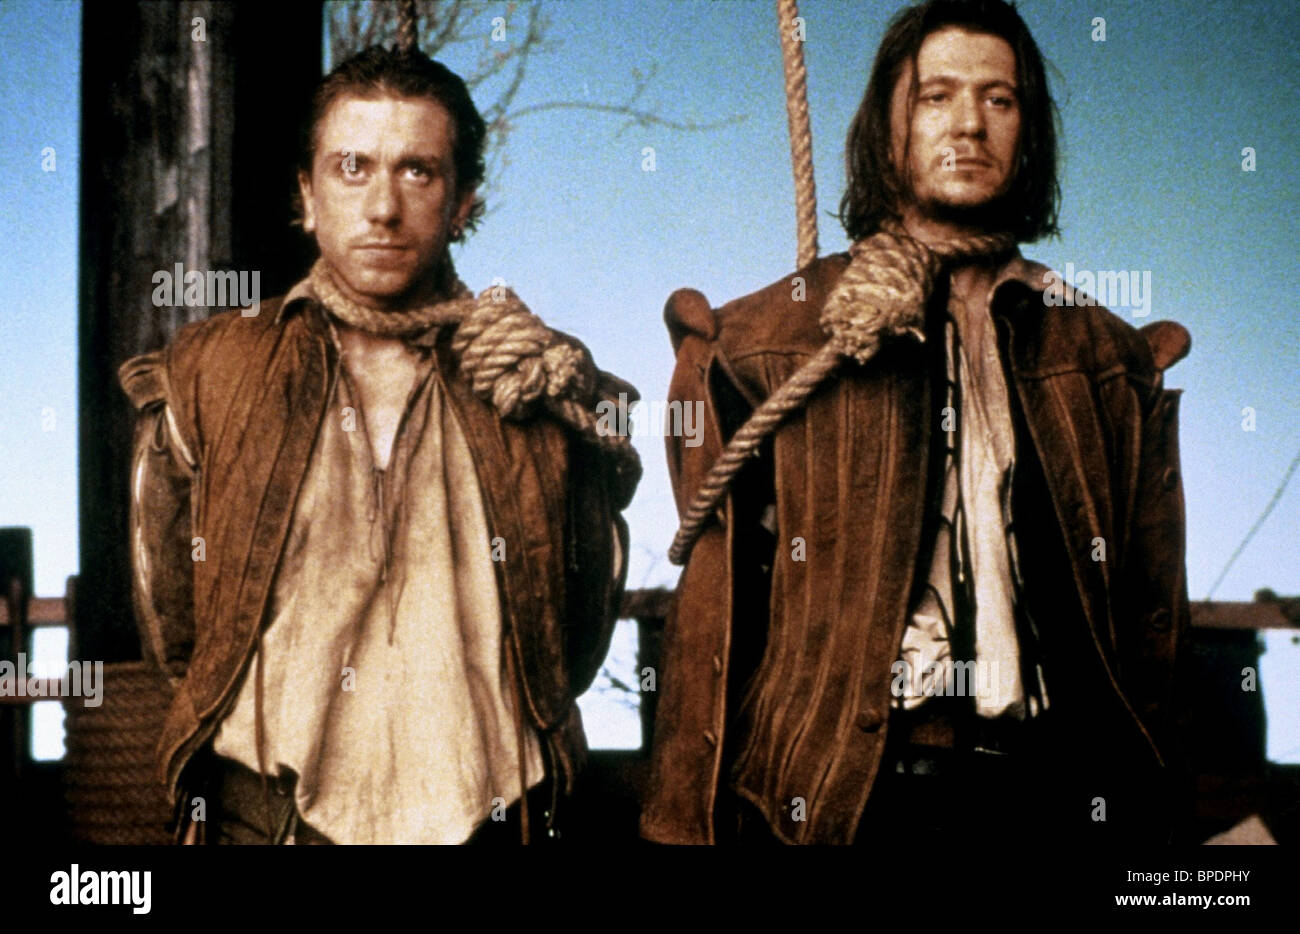 TIM ROTH, GARY OLDMAN, ROSENCRANTZ and GUILDENSTERN ARE DEAD, 1990 - Stock Image